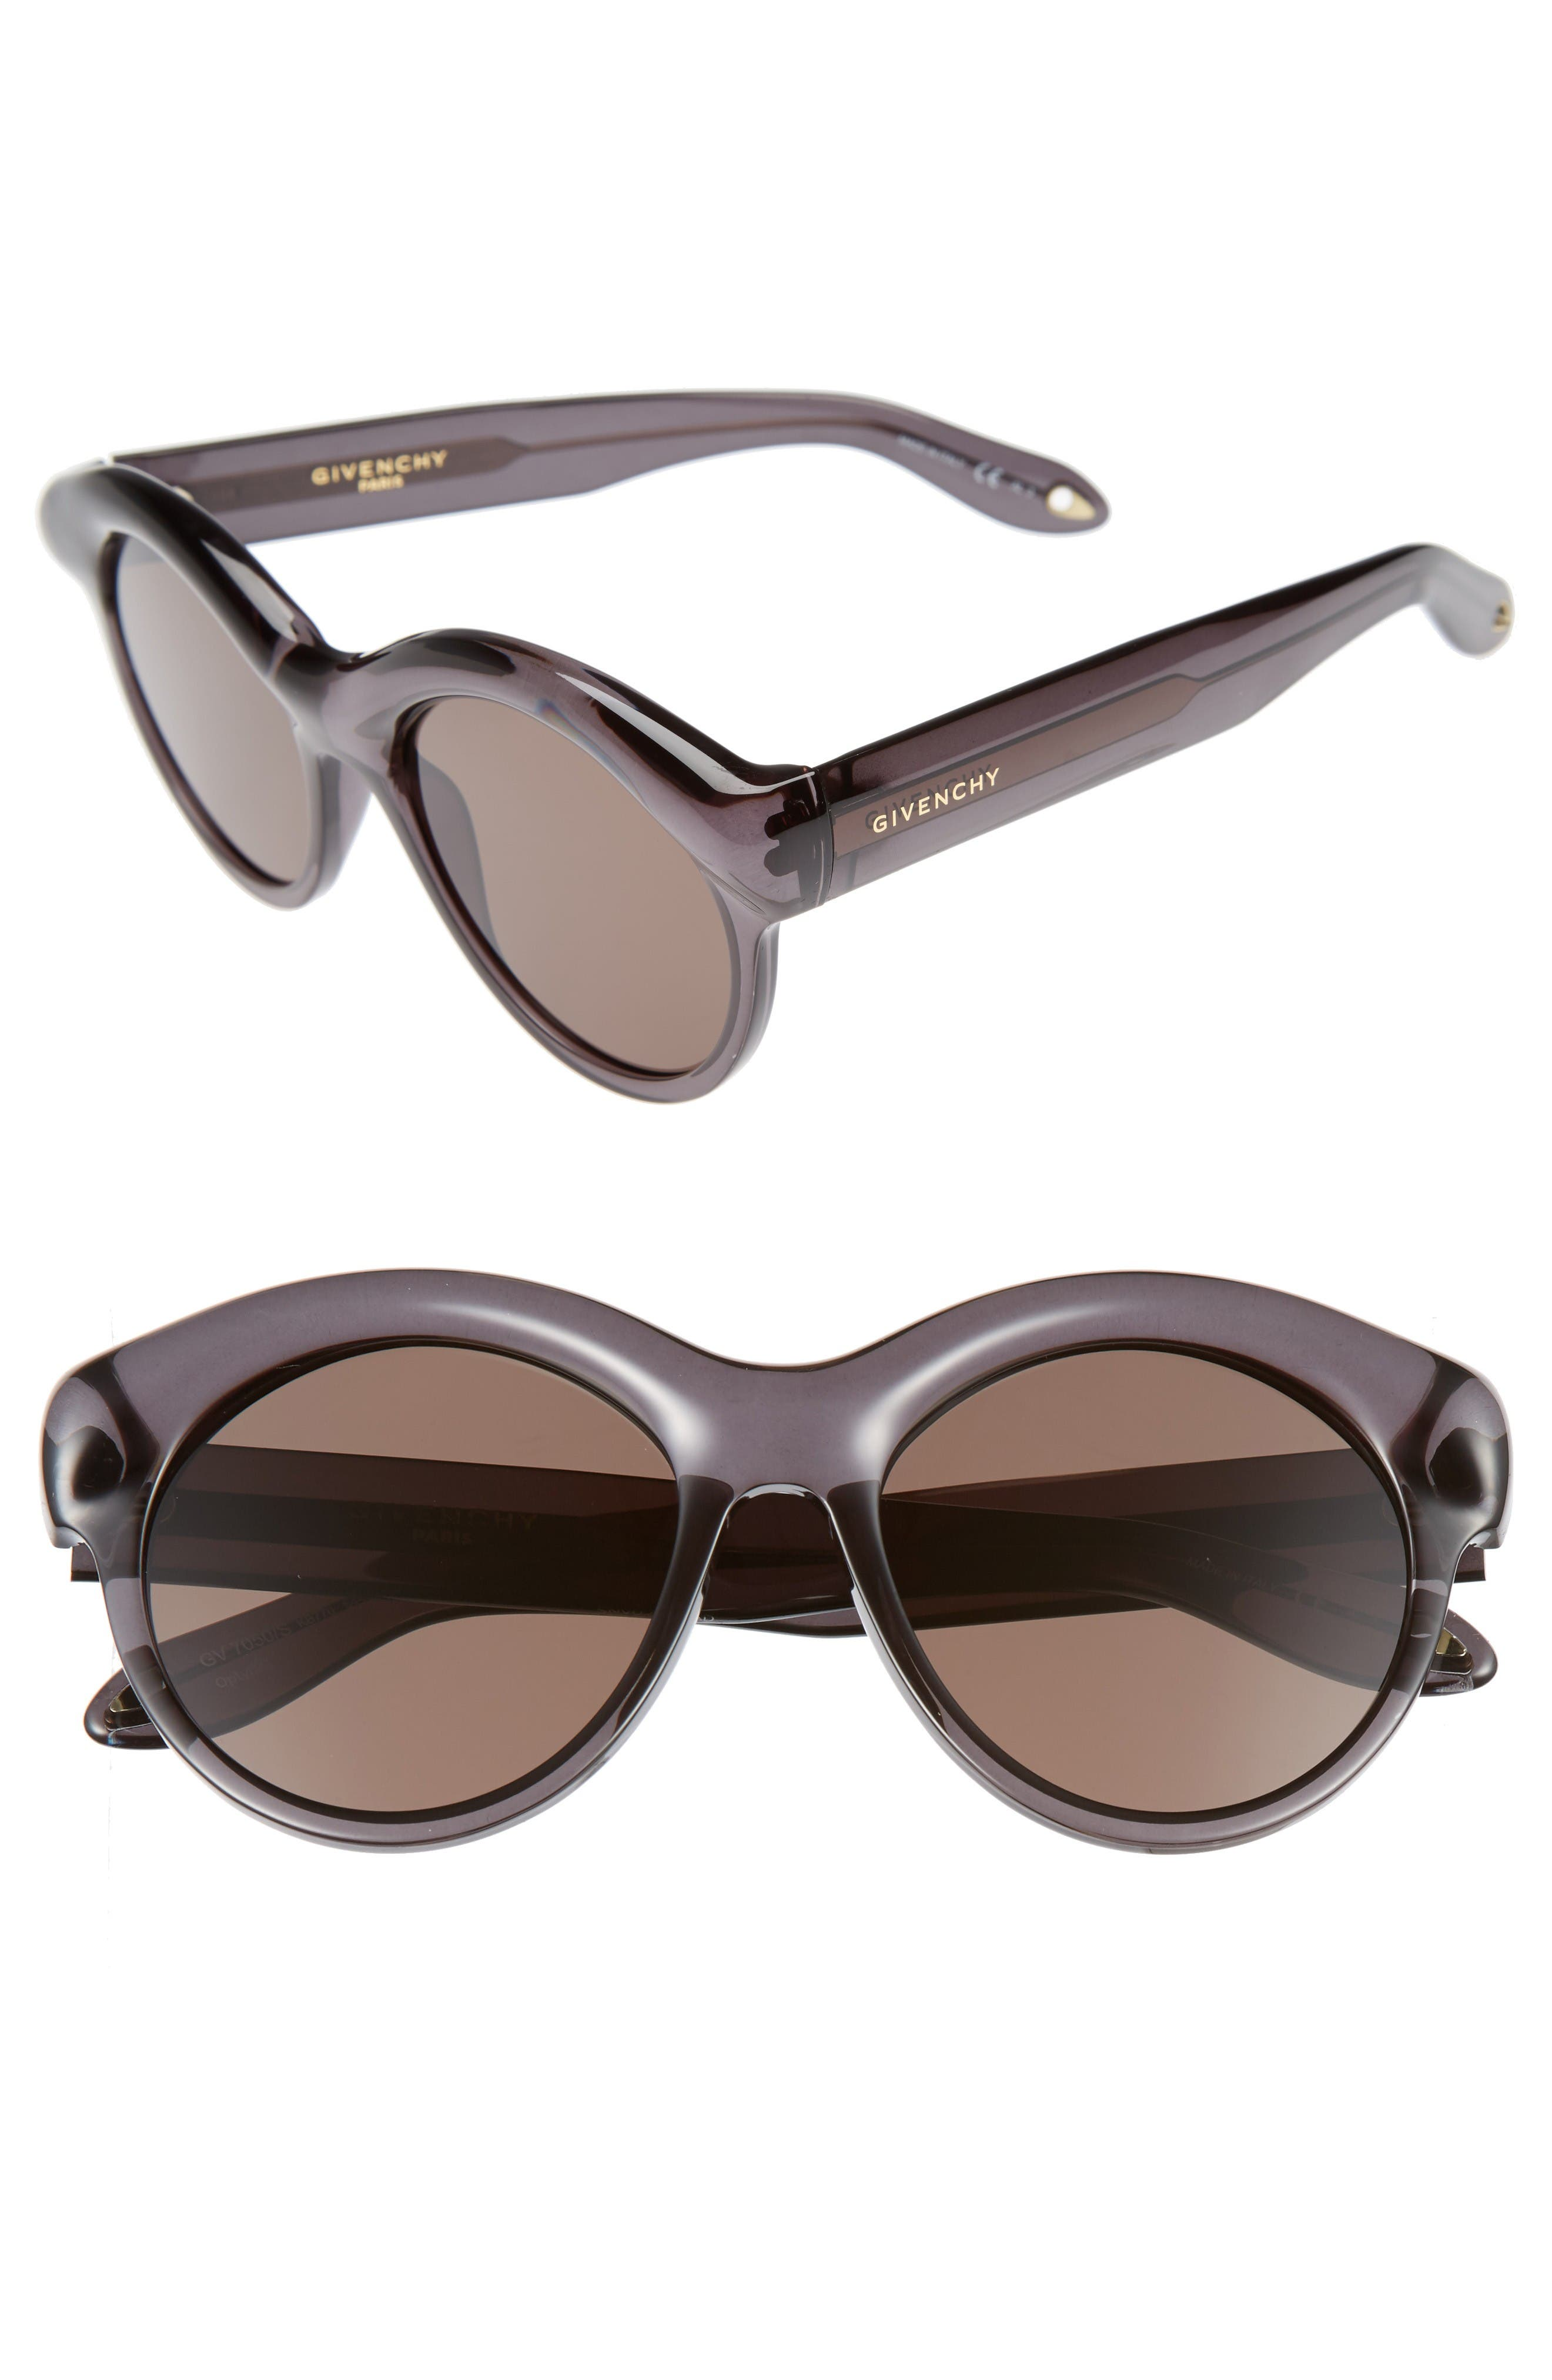 Givenchy 54mm Sunglasses